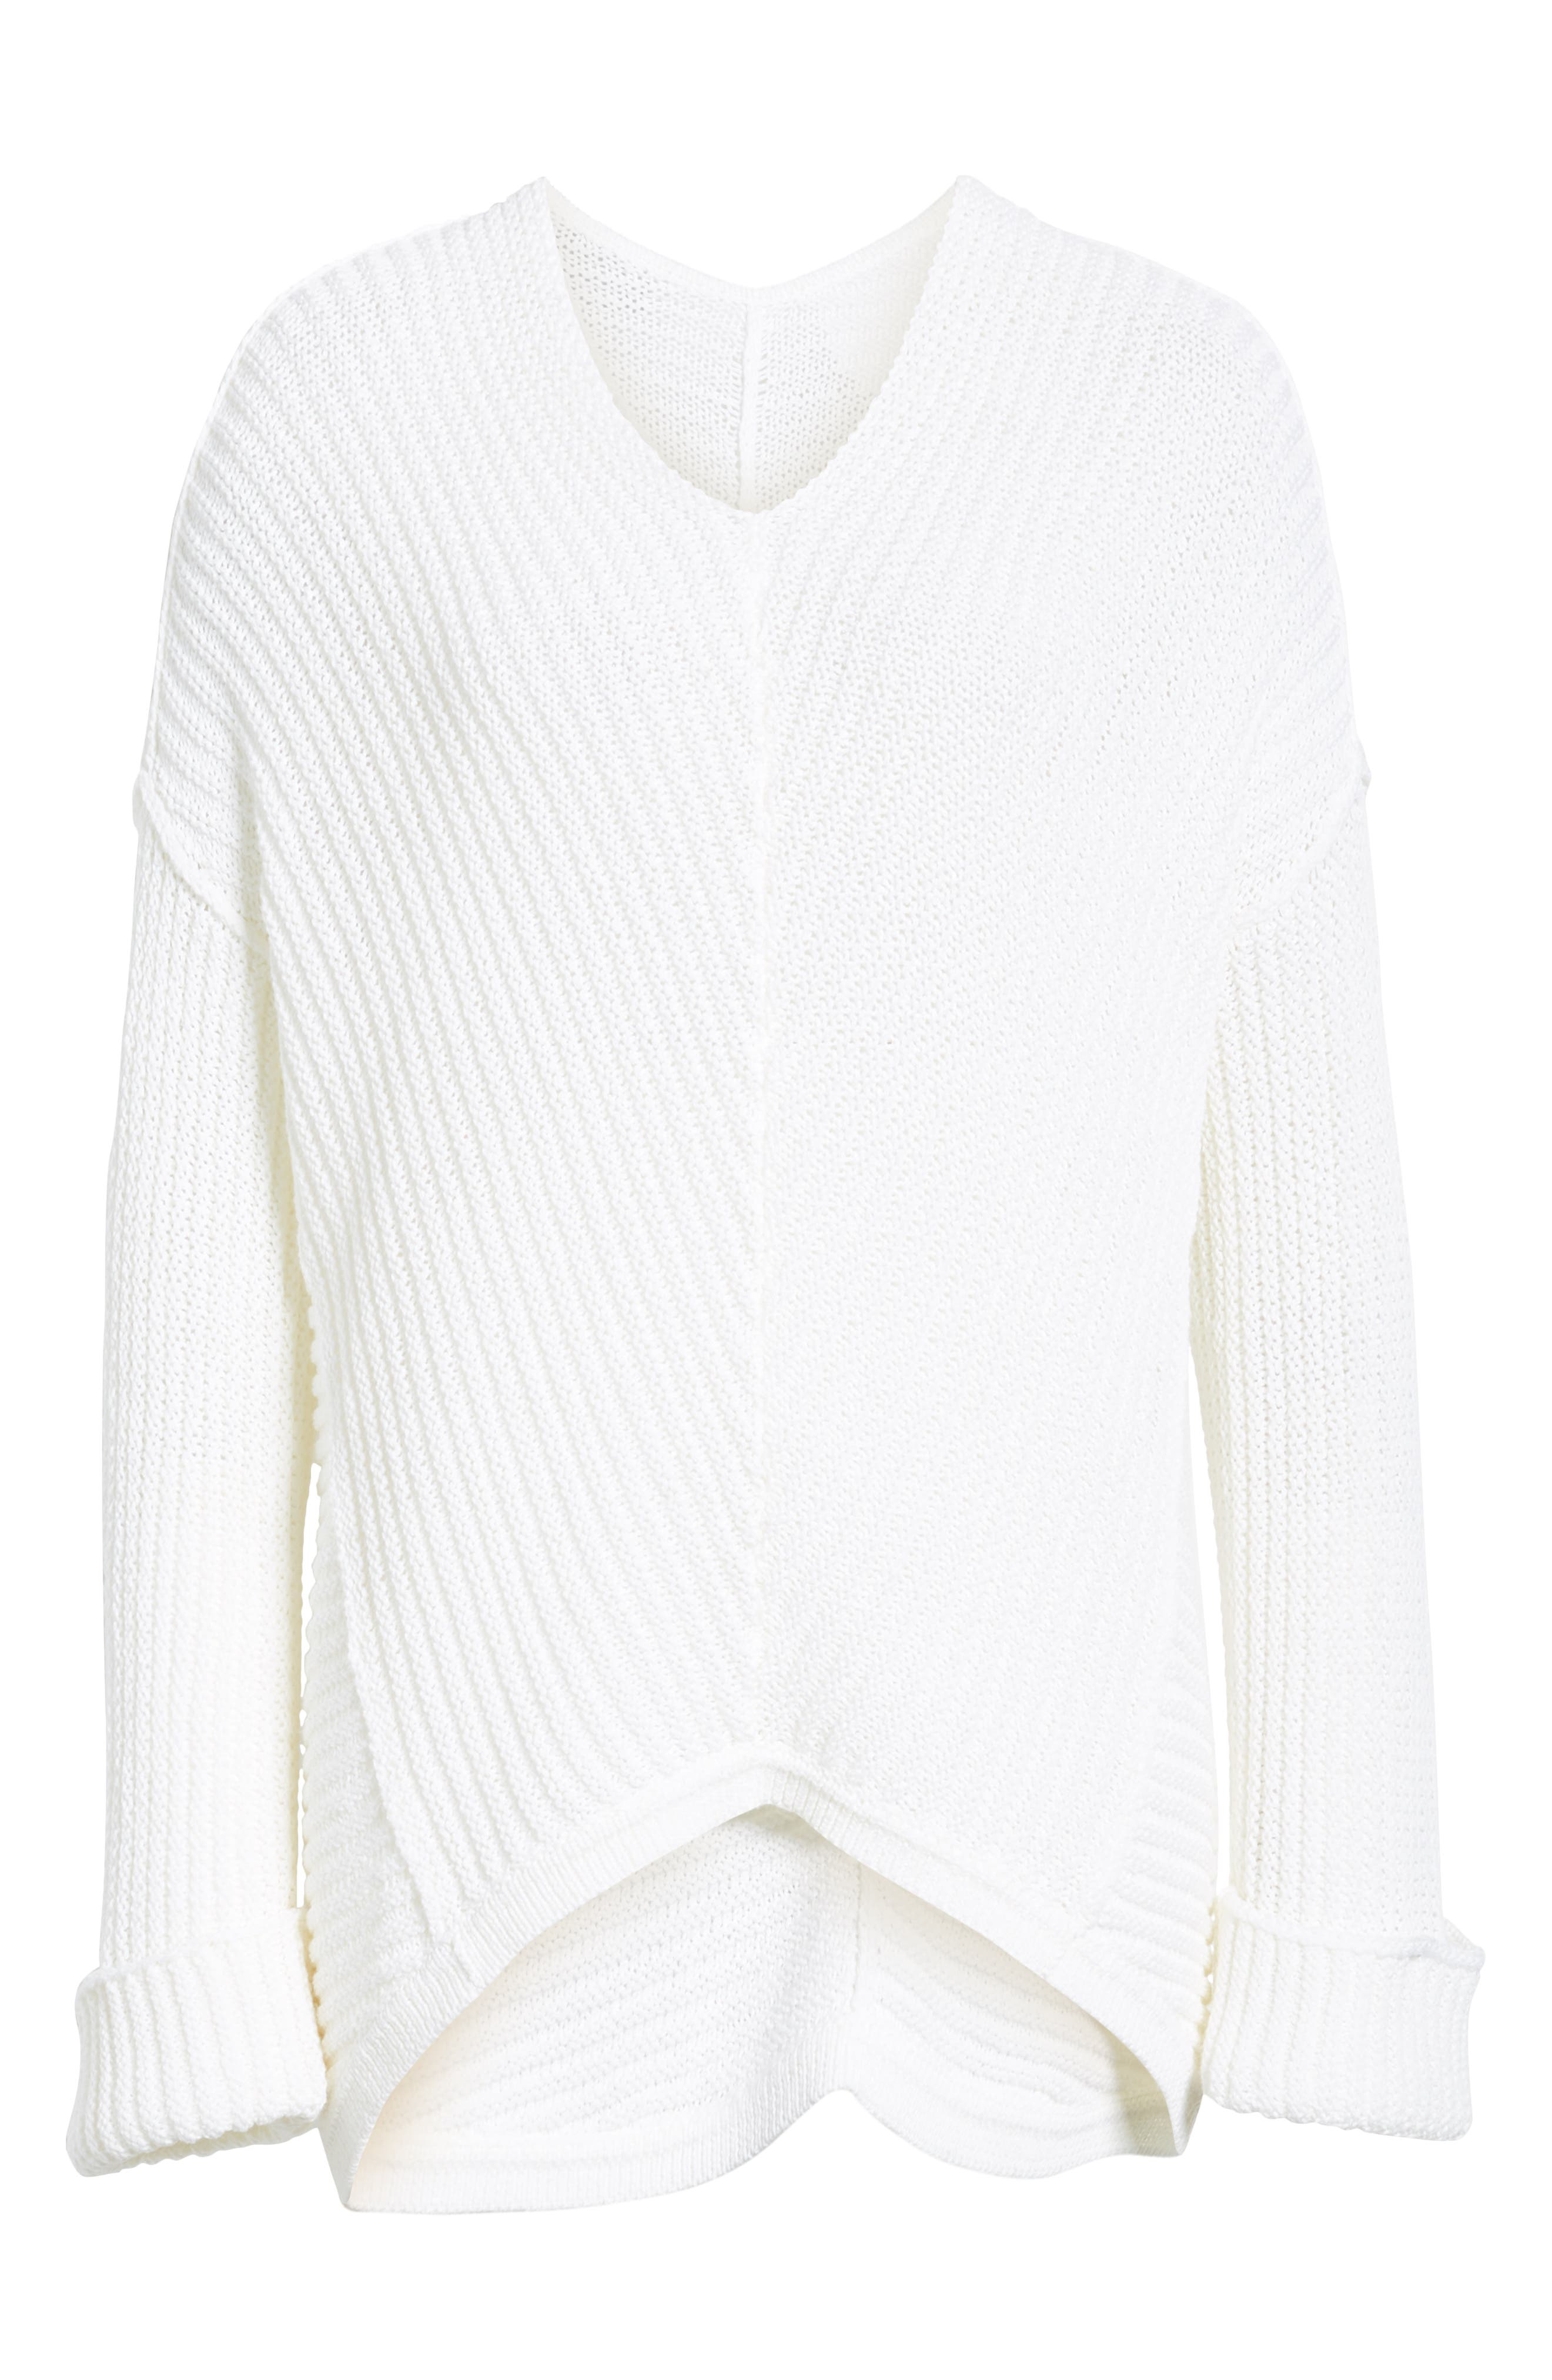 Cuffed Sleeve Sweater,                             Alternate thumbnail 6, color,                             100